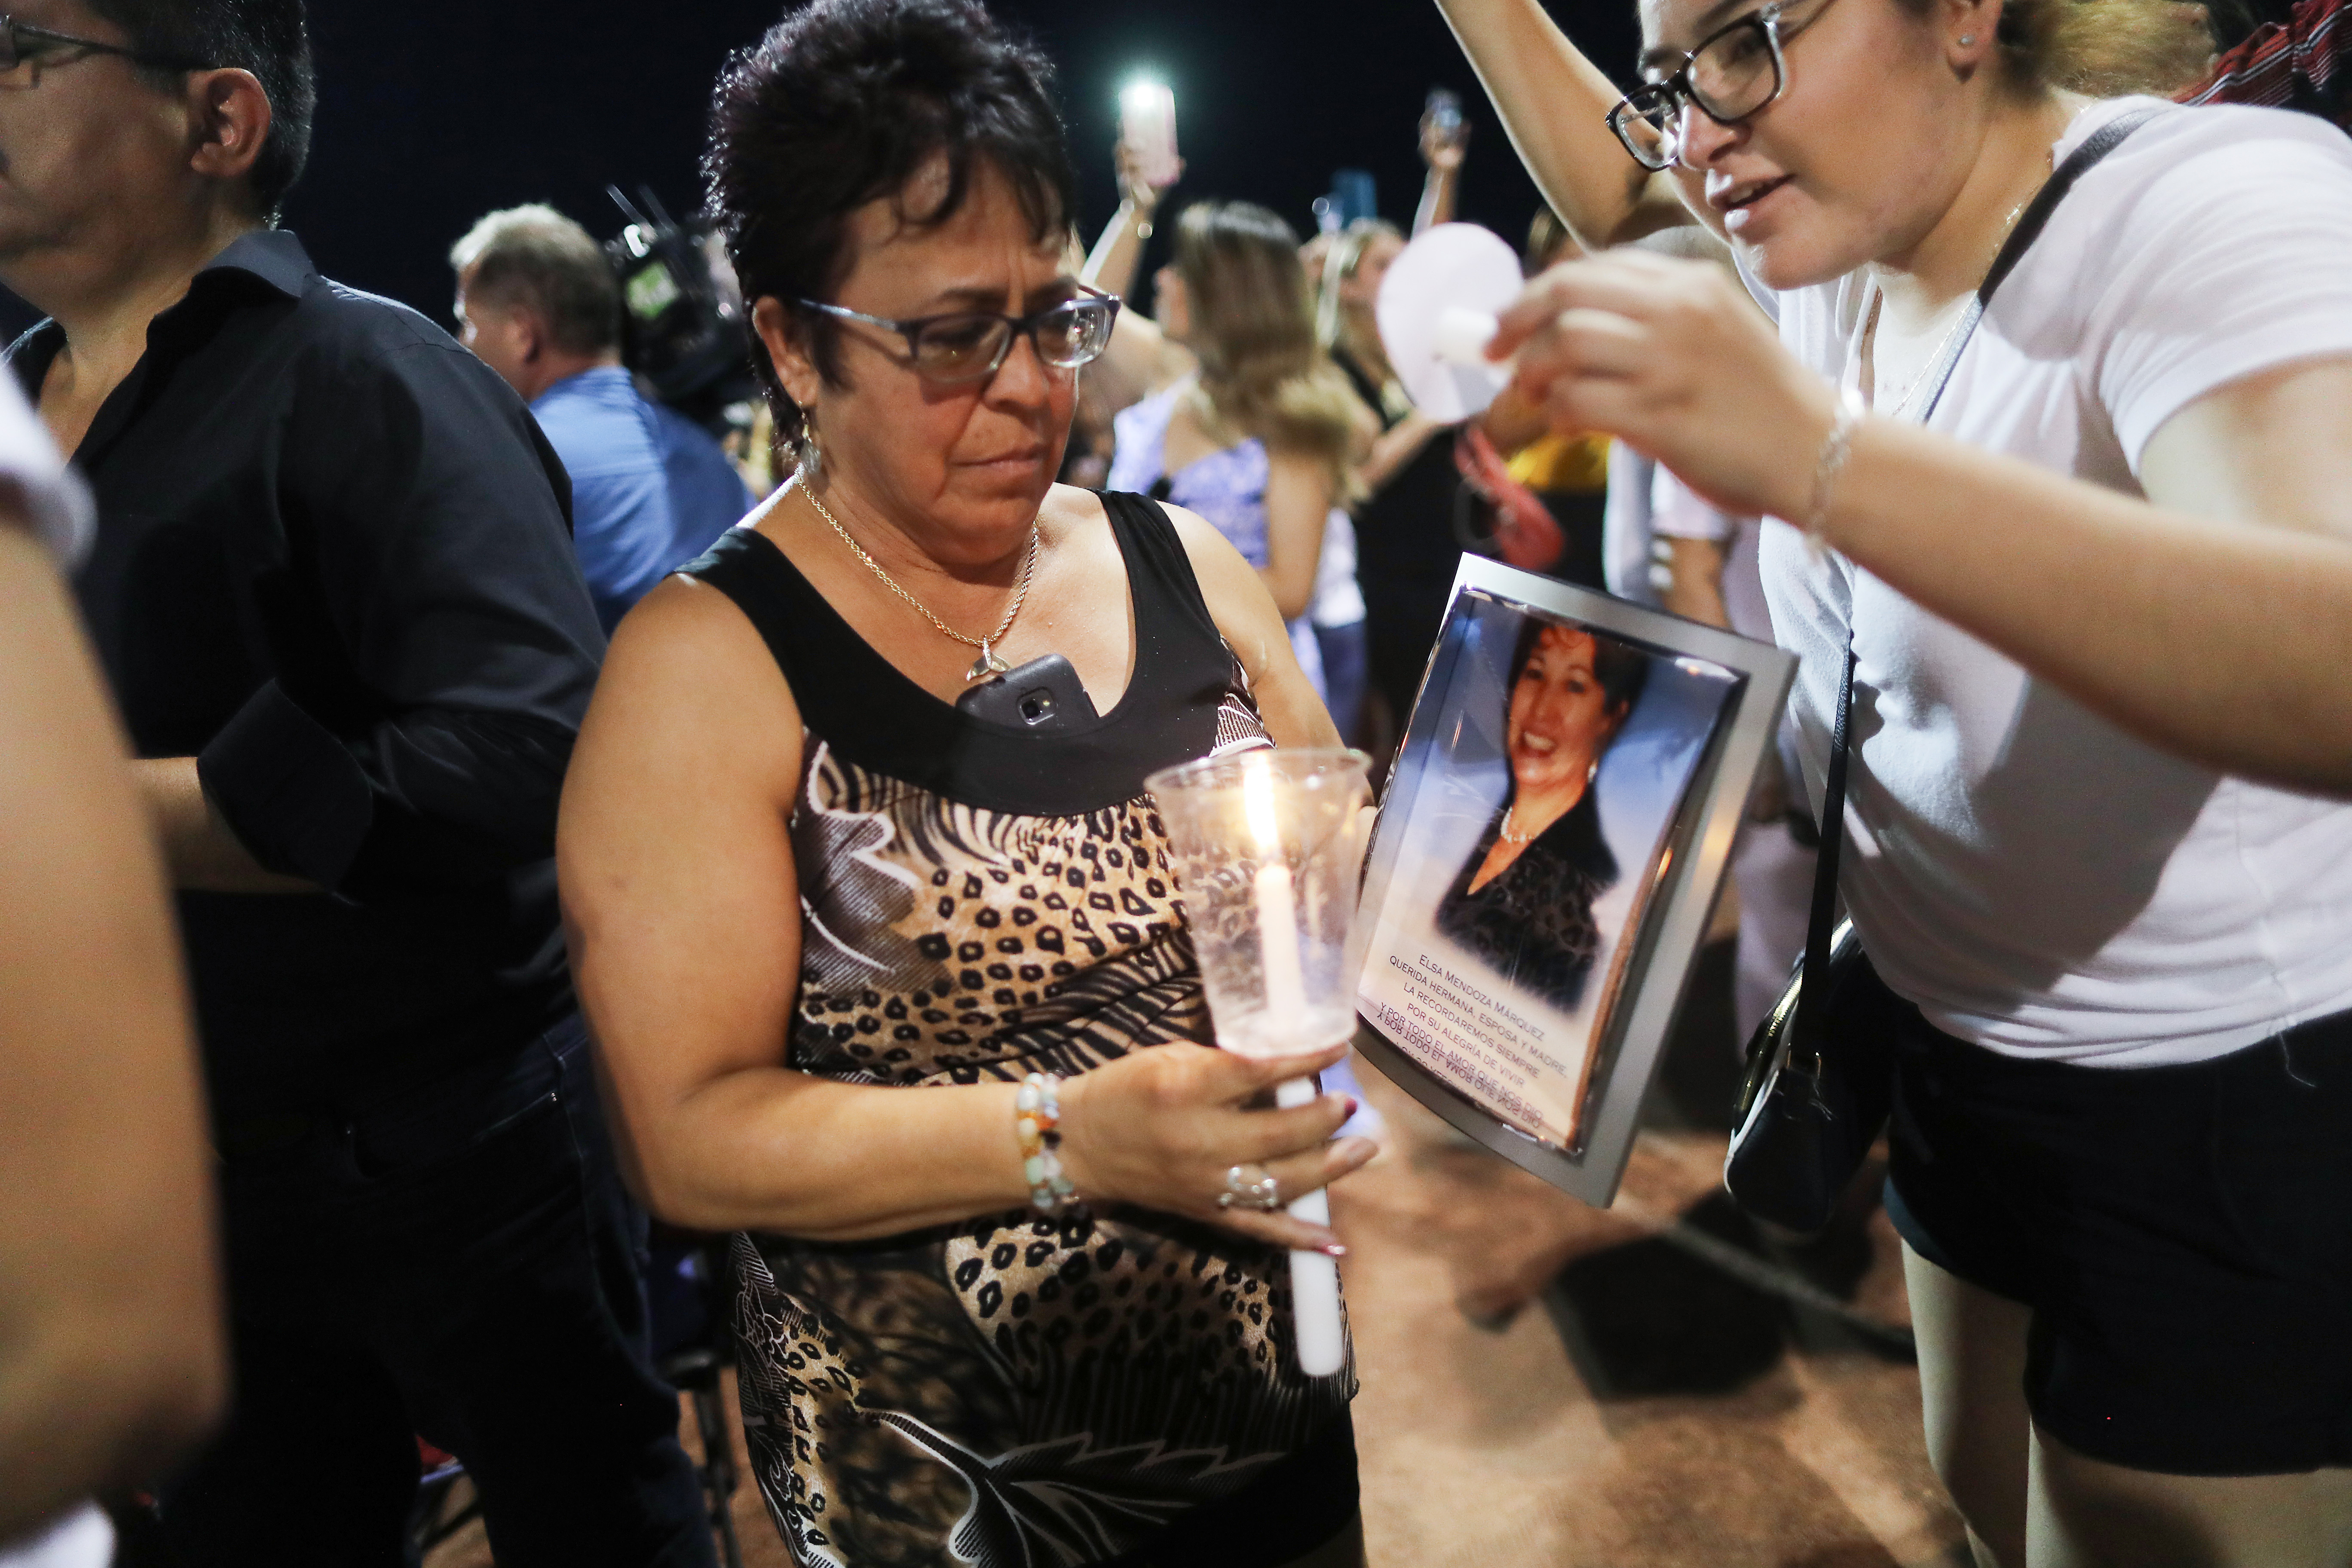 Lupe Lopez carries a photo Elsa Mendoza Marquez, a Mexican schoolteacher from Ciudad Juarez who was killed in the shooting, during an interfaith vigil for victims of a mass shooting which left at least 20 people dead, on August 4, 2019 in El Paso, Texas. (Photo by Mario Tama/Getty Images)